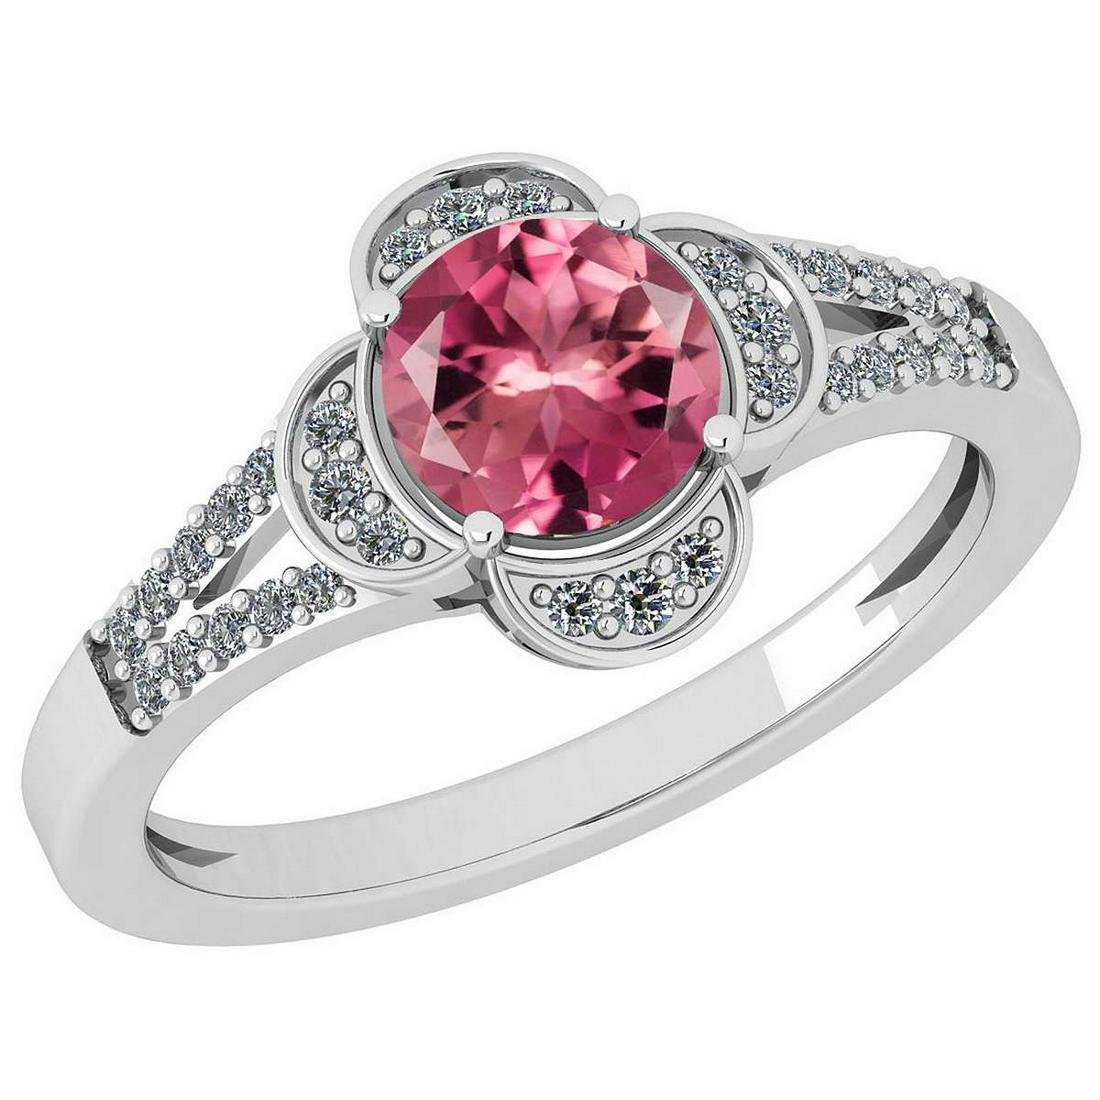 Certified 1.15 Ctw Pink Tourmaline And Diamond VS/SI1 1